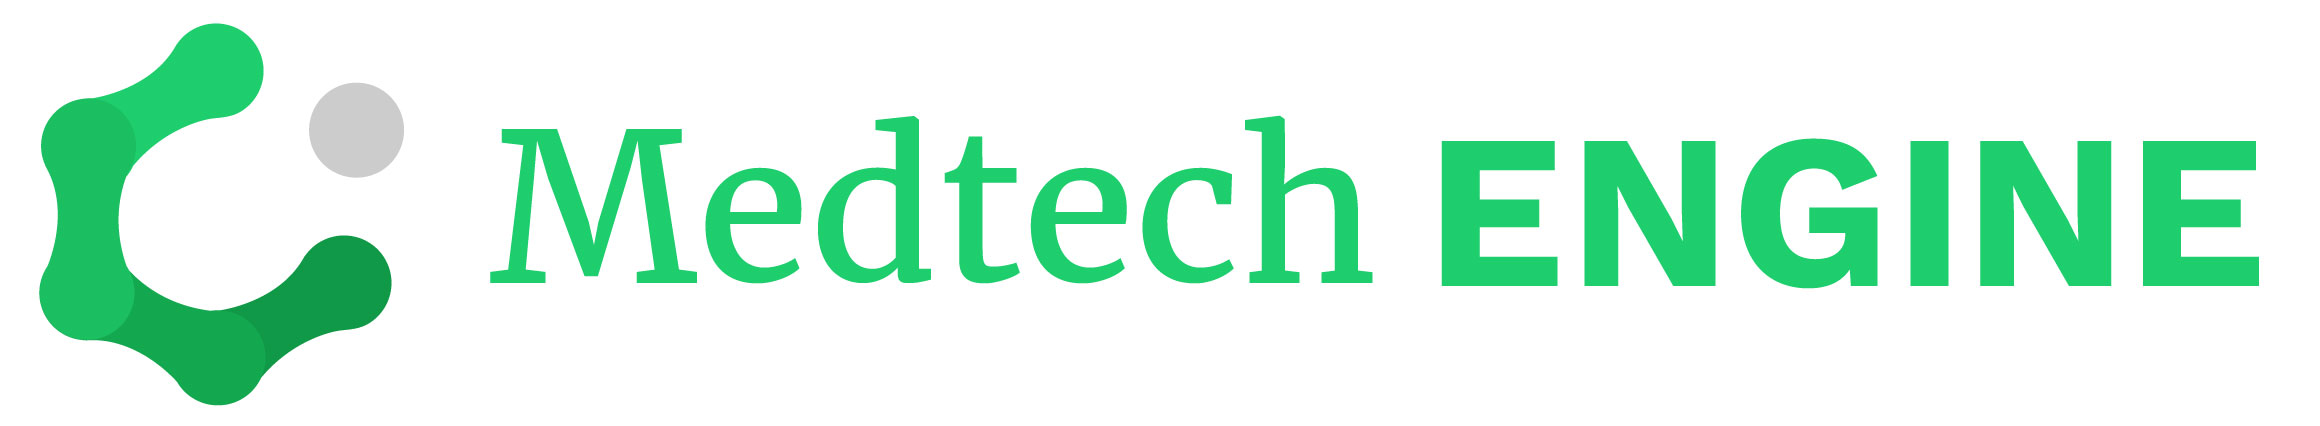 MedTech-Engine-logo-colour